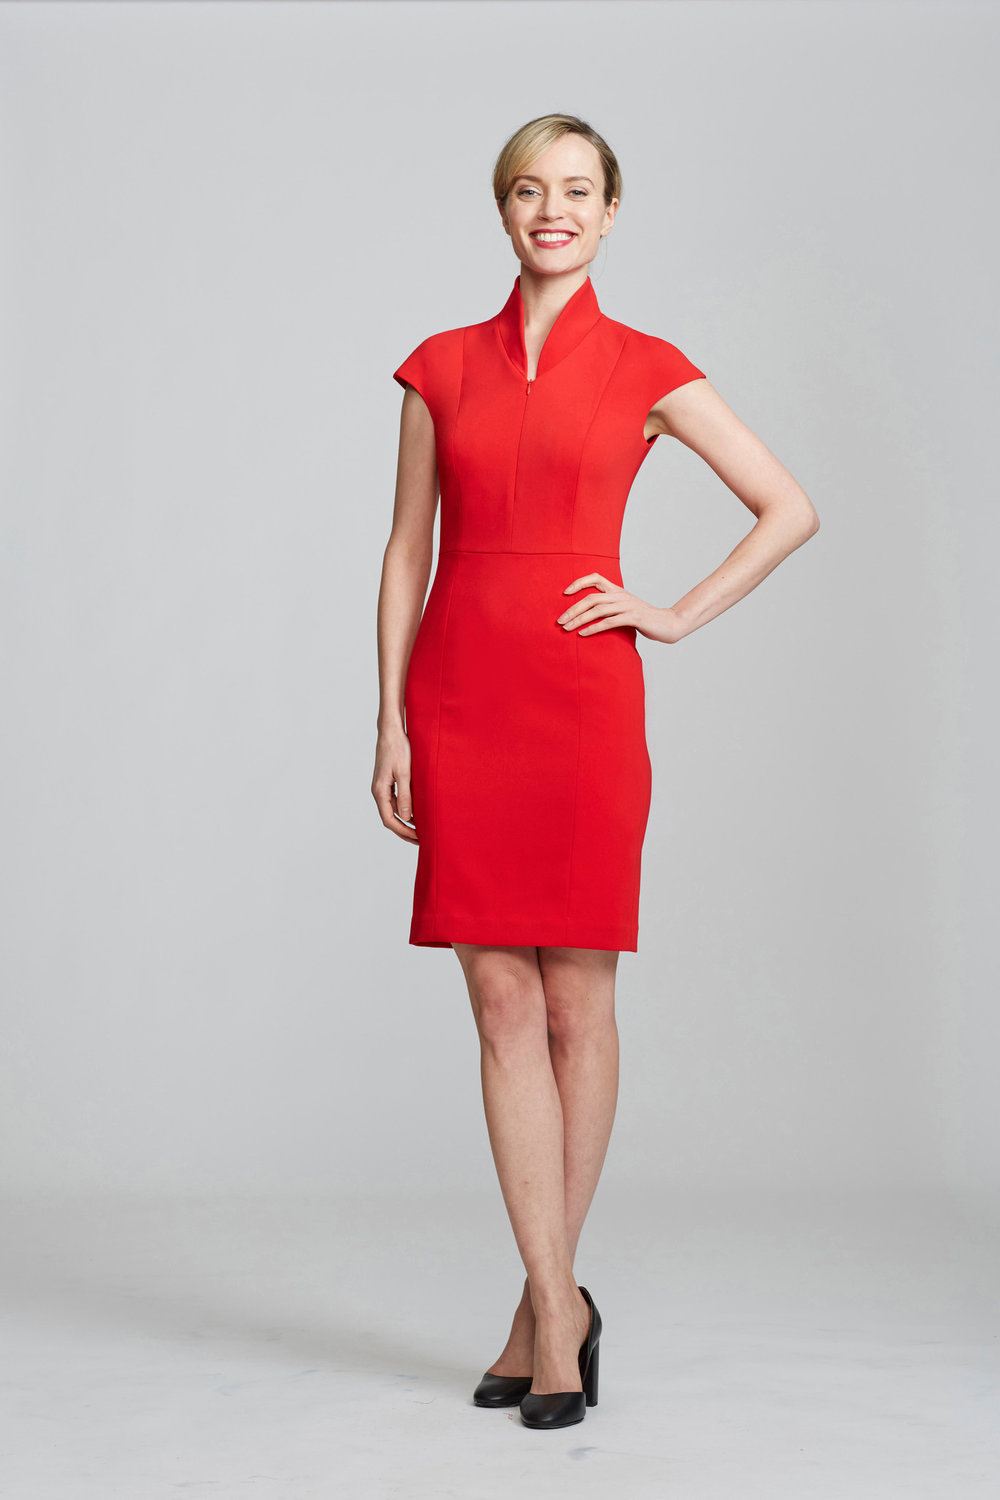 nora gardener interview - the evelyn dress power red - briar prestidge - deals in high heels